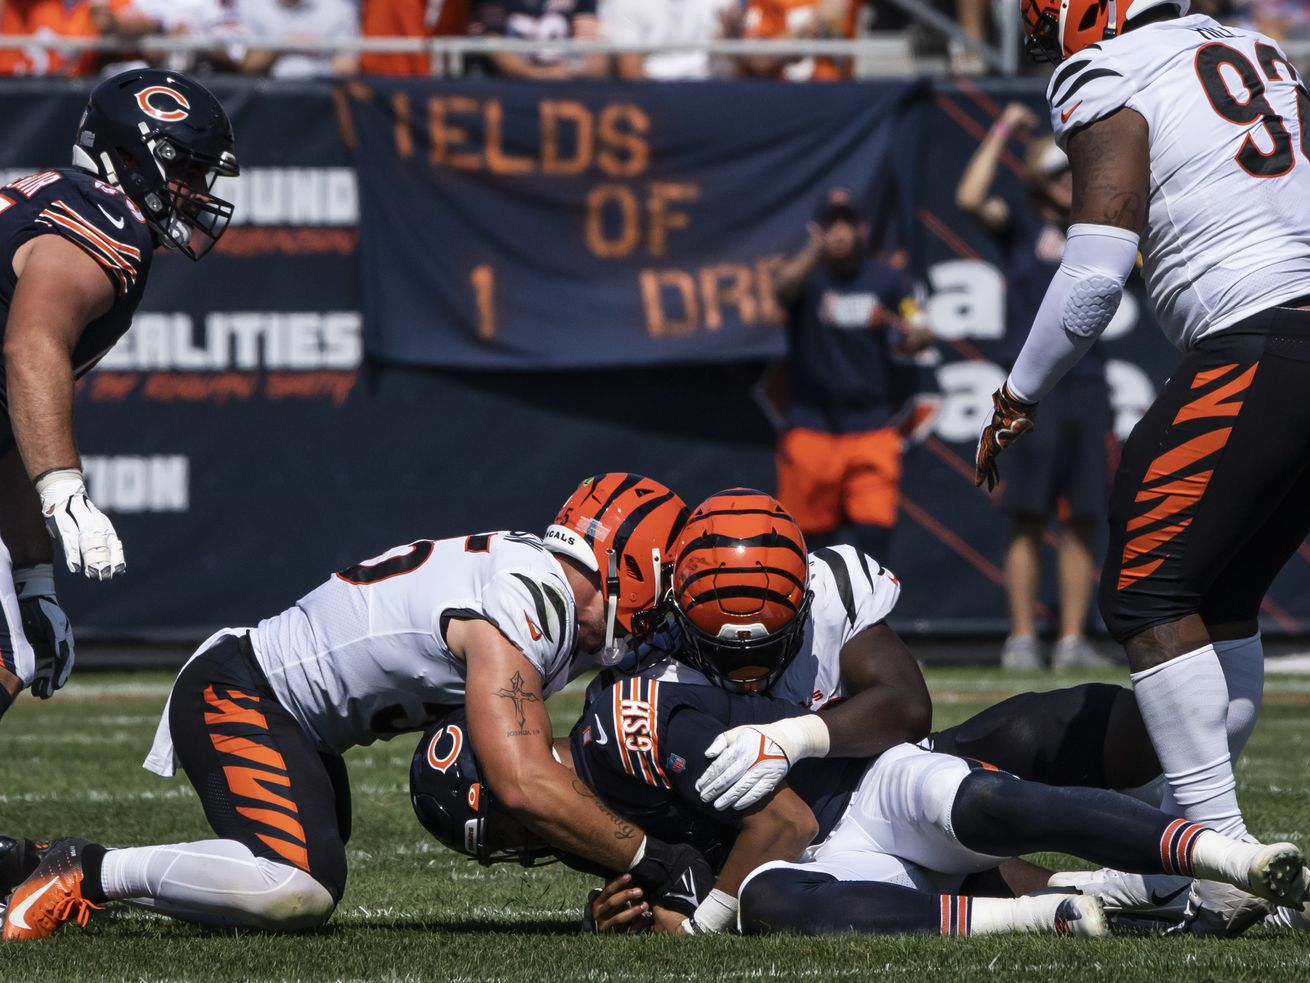 Bears quarterback Justin Fields made a huge play when he recovered his own fumble in the third quarter Sunday against the Bengals at Soldier Field.